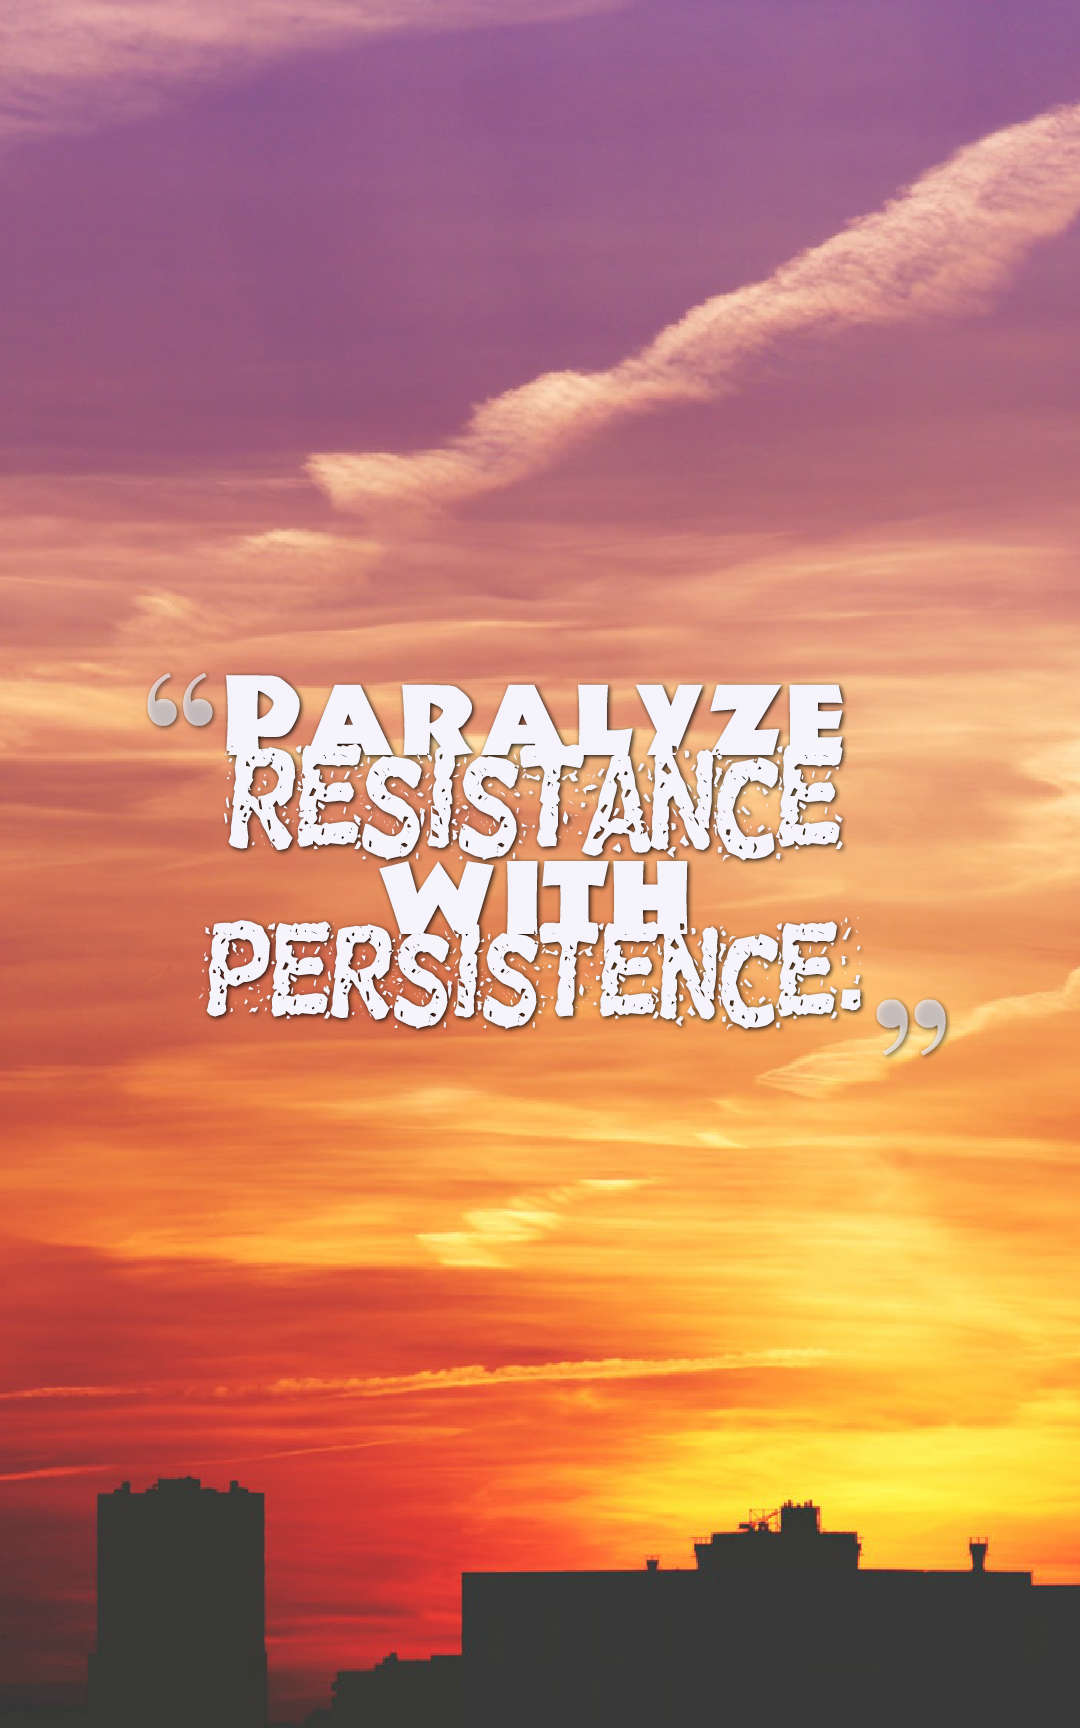 Persistence Motivational Quotes: 22 Best Persistence Quotes Images